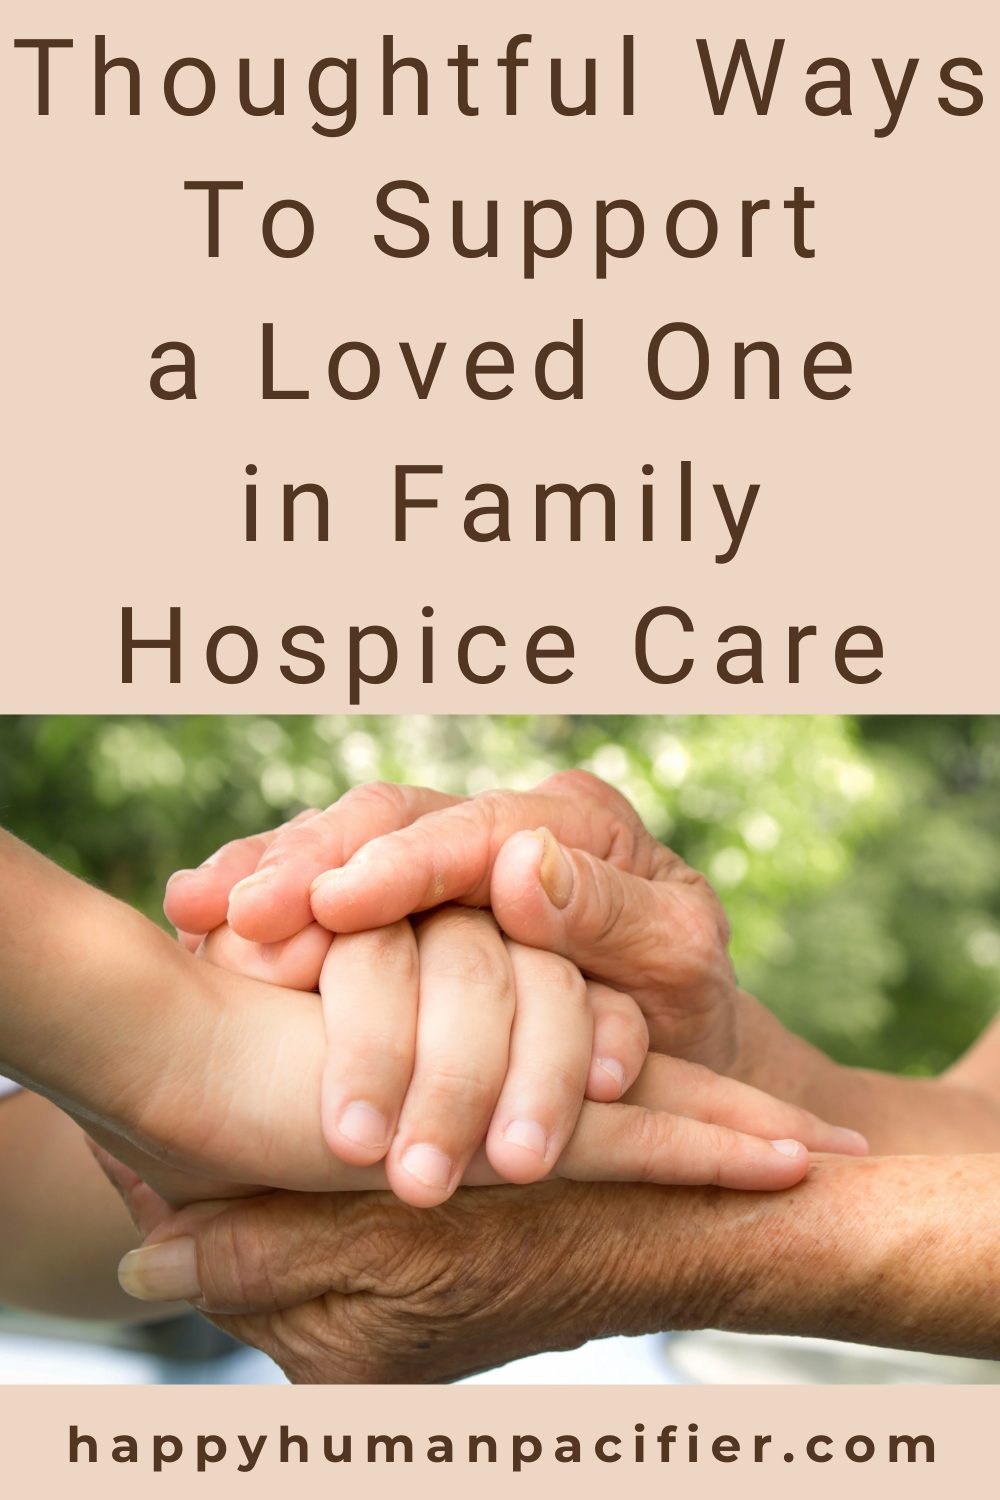 You don't have to feel helpless when a loved one is facing a terminal illness. Here are 15 meaningful ways to support a loved one in family hospice care.